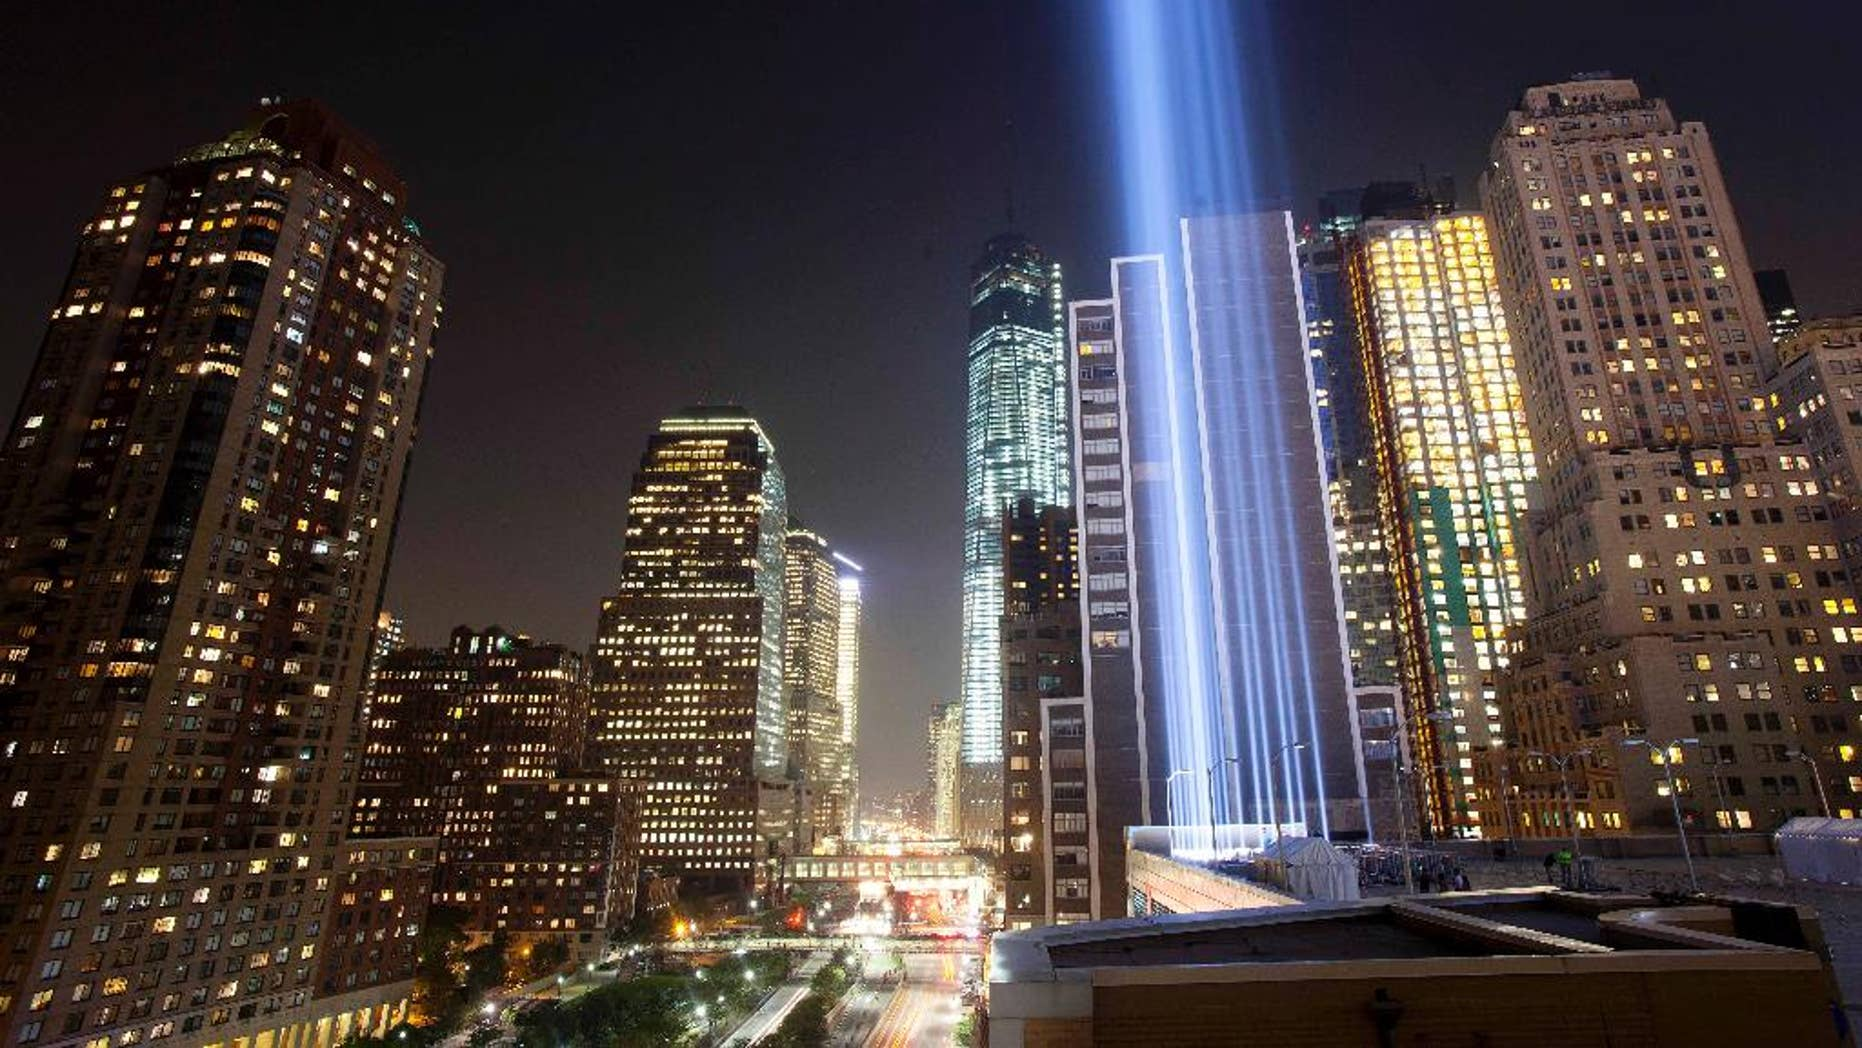 FILE- In this Sept. 10, 2013 file photo, the Tribute in Light rises into the night sky during a test in New York. The National September 11 Memorial and Museum will be closed to the public during the September 11 commemoration ceremony and much of the rest of the day, but it will be open from 6 p.m. to midnight for anyone who wants a close up view of the Tribute in Light. (AP Photo/Mark Lennihan, File)